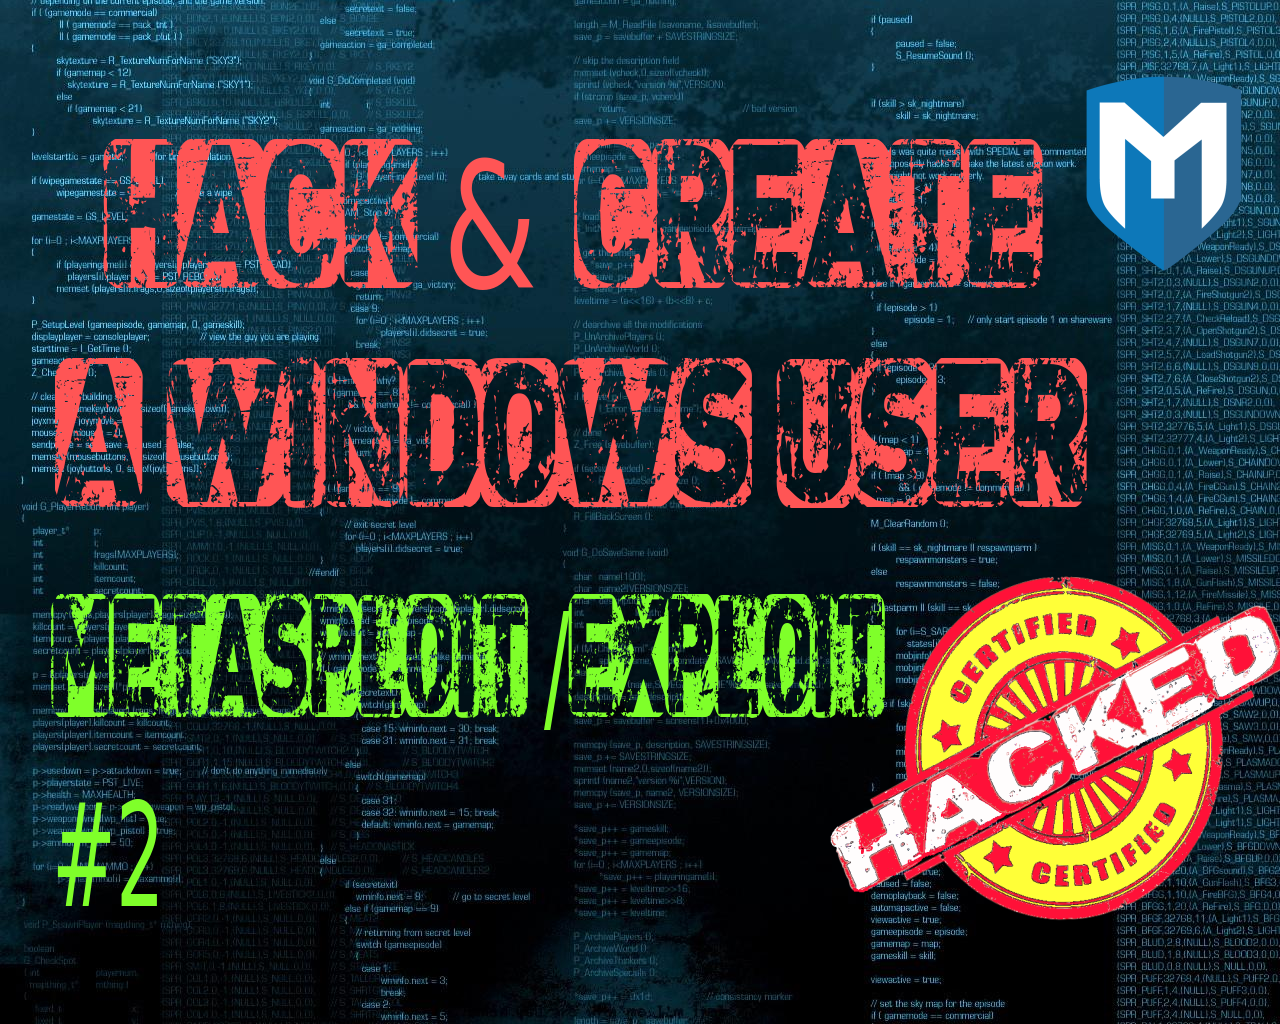 Metasploit/Exploit #2 : How to Hack and Remotely create a